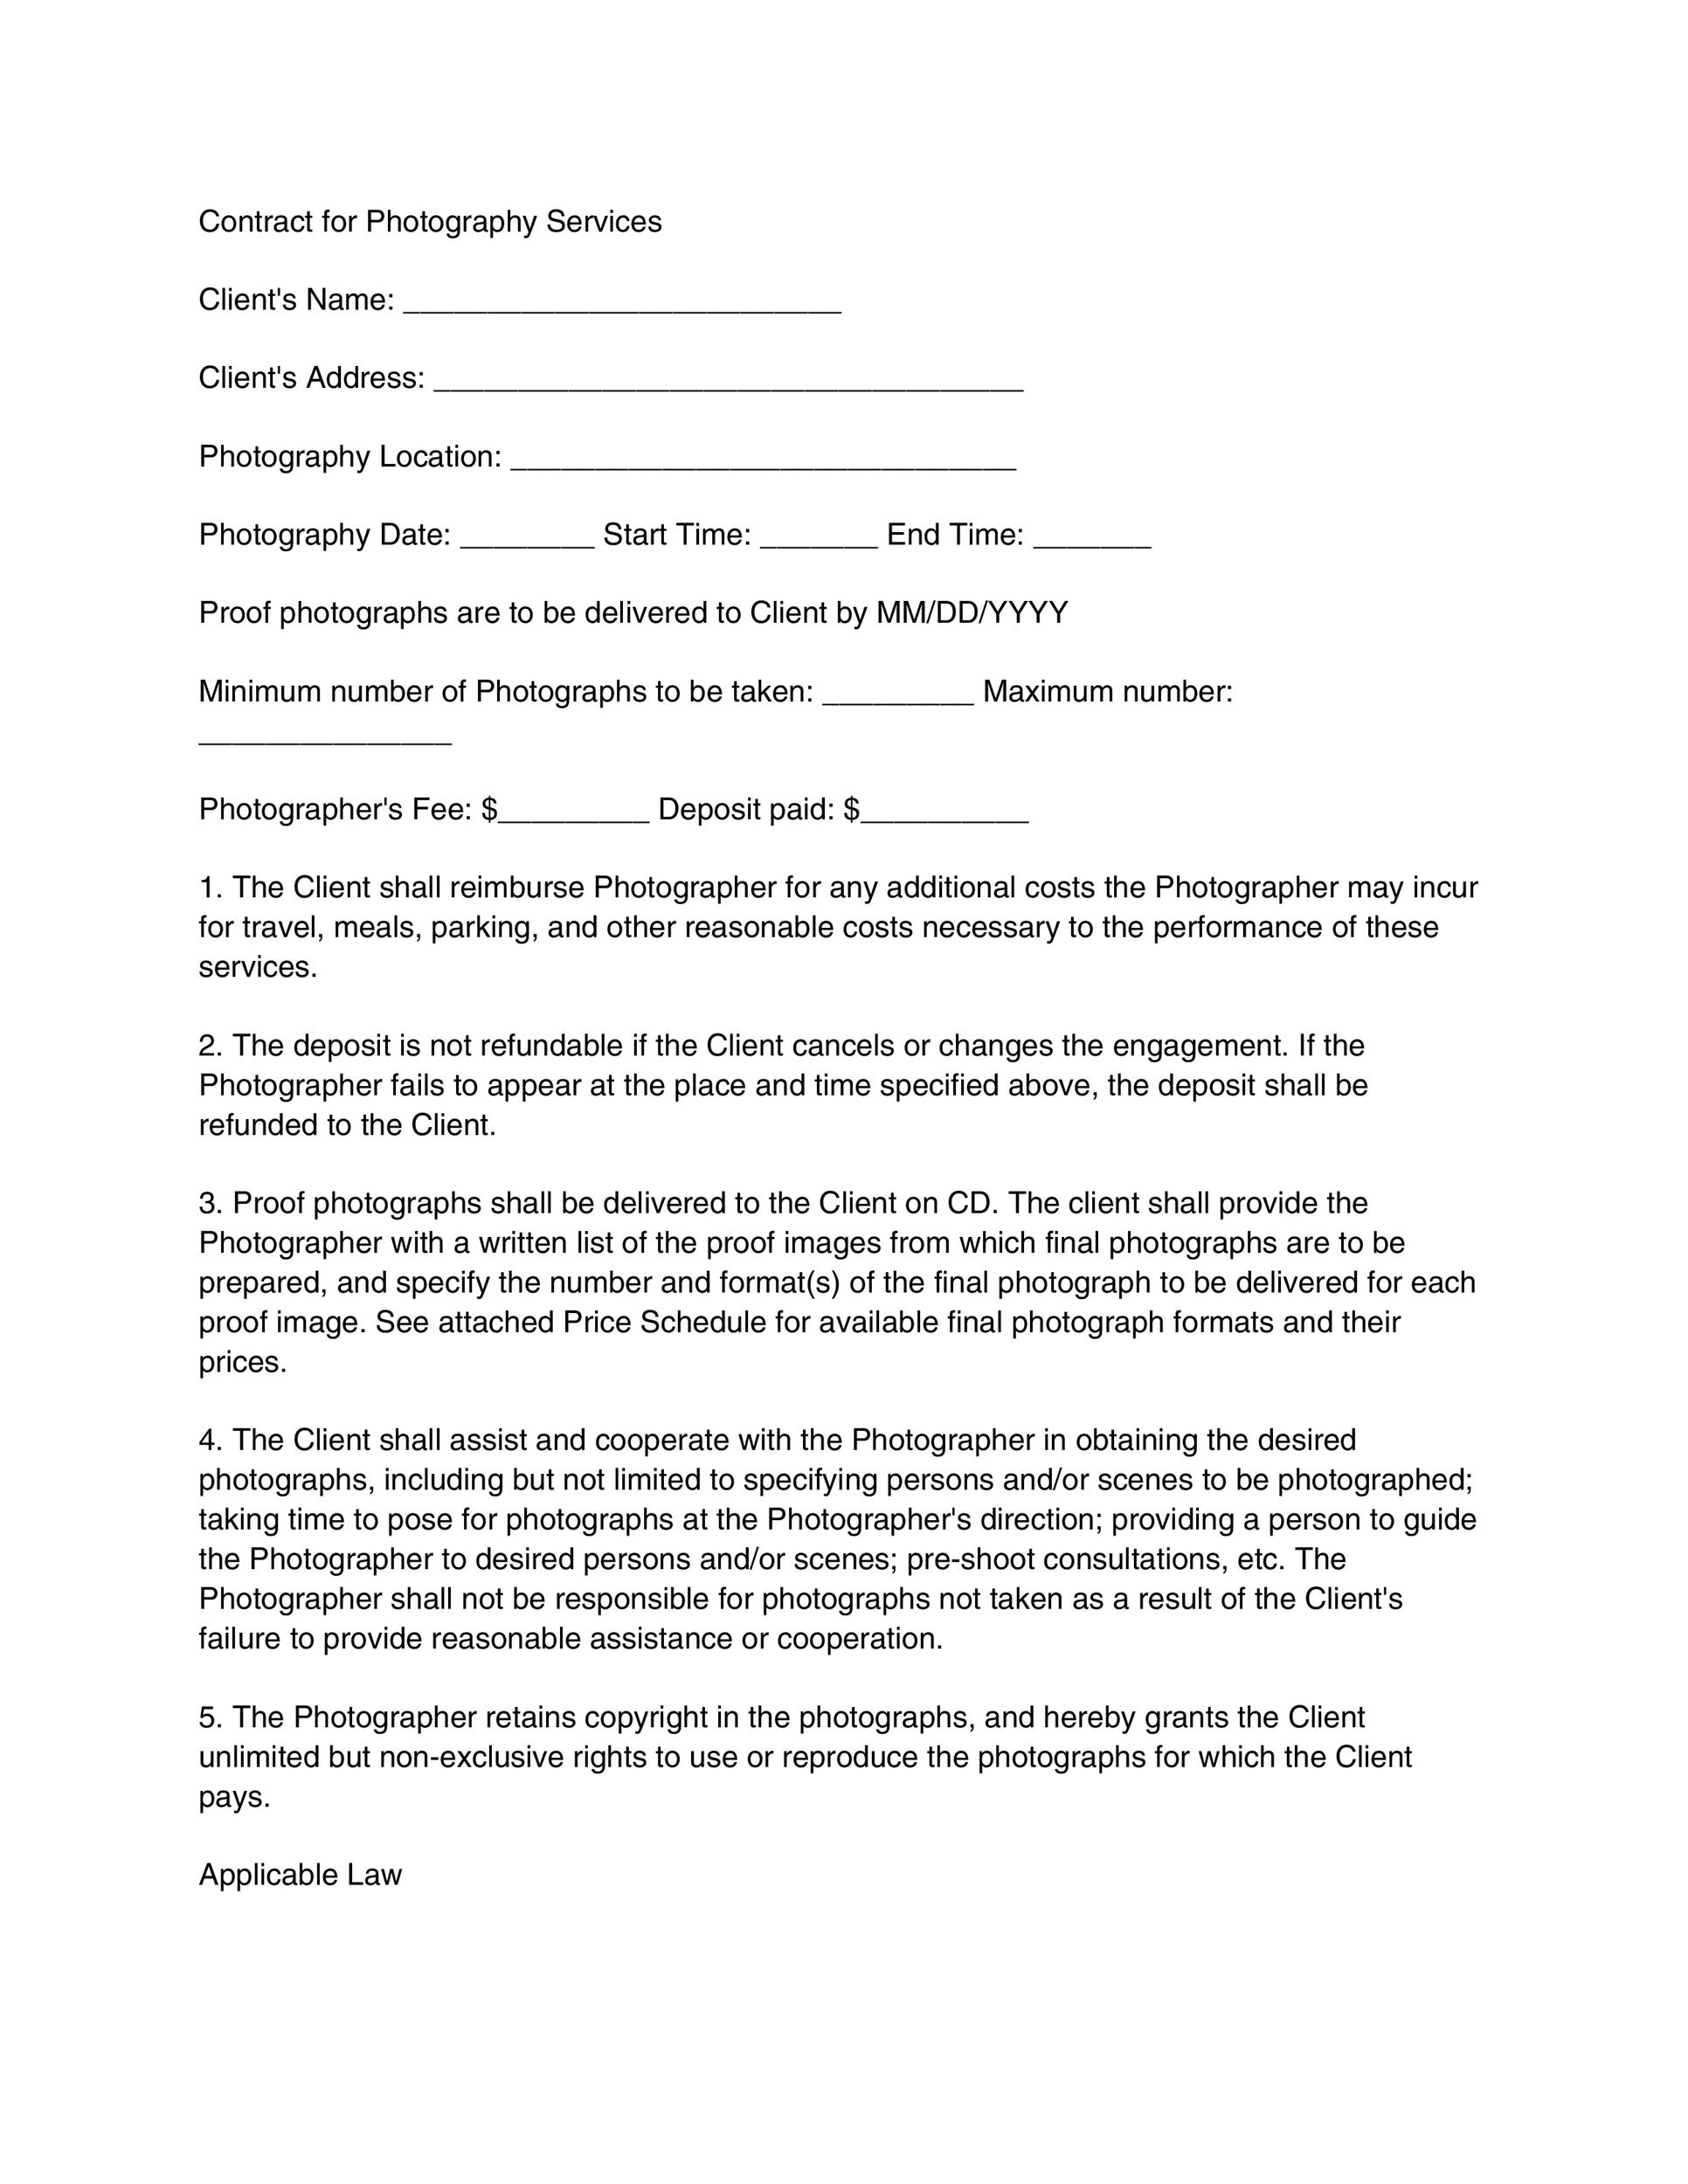 40 Great Contract Templates (Employment, Construction, Photography - photography services contract